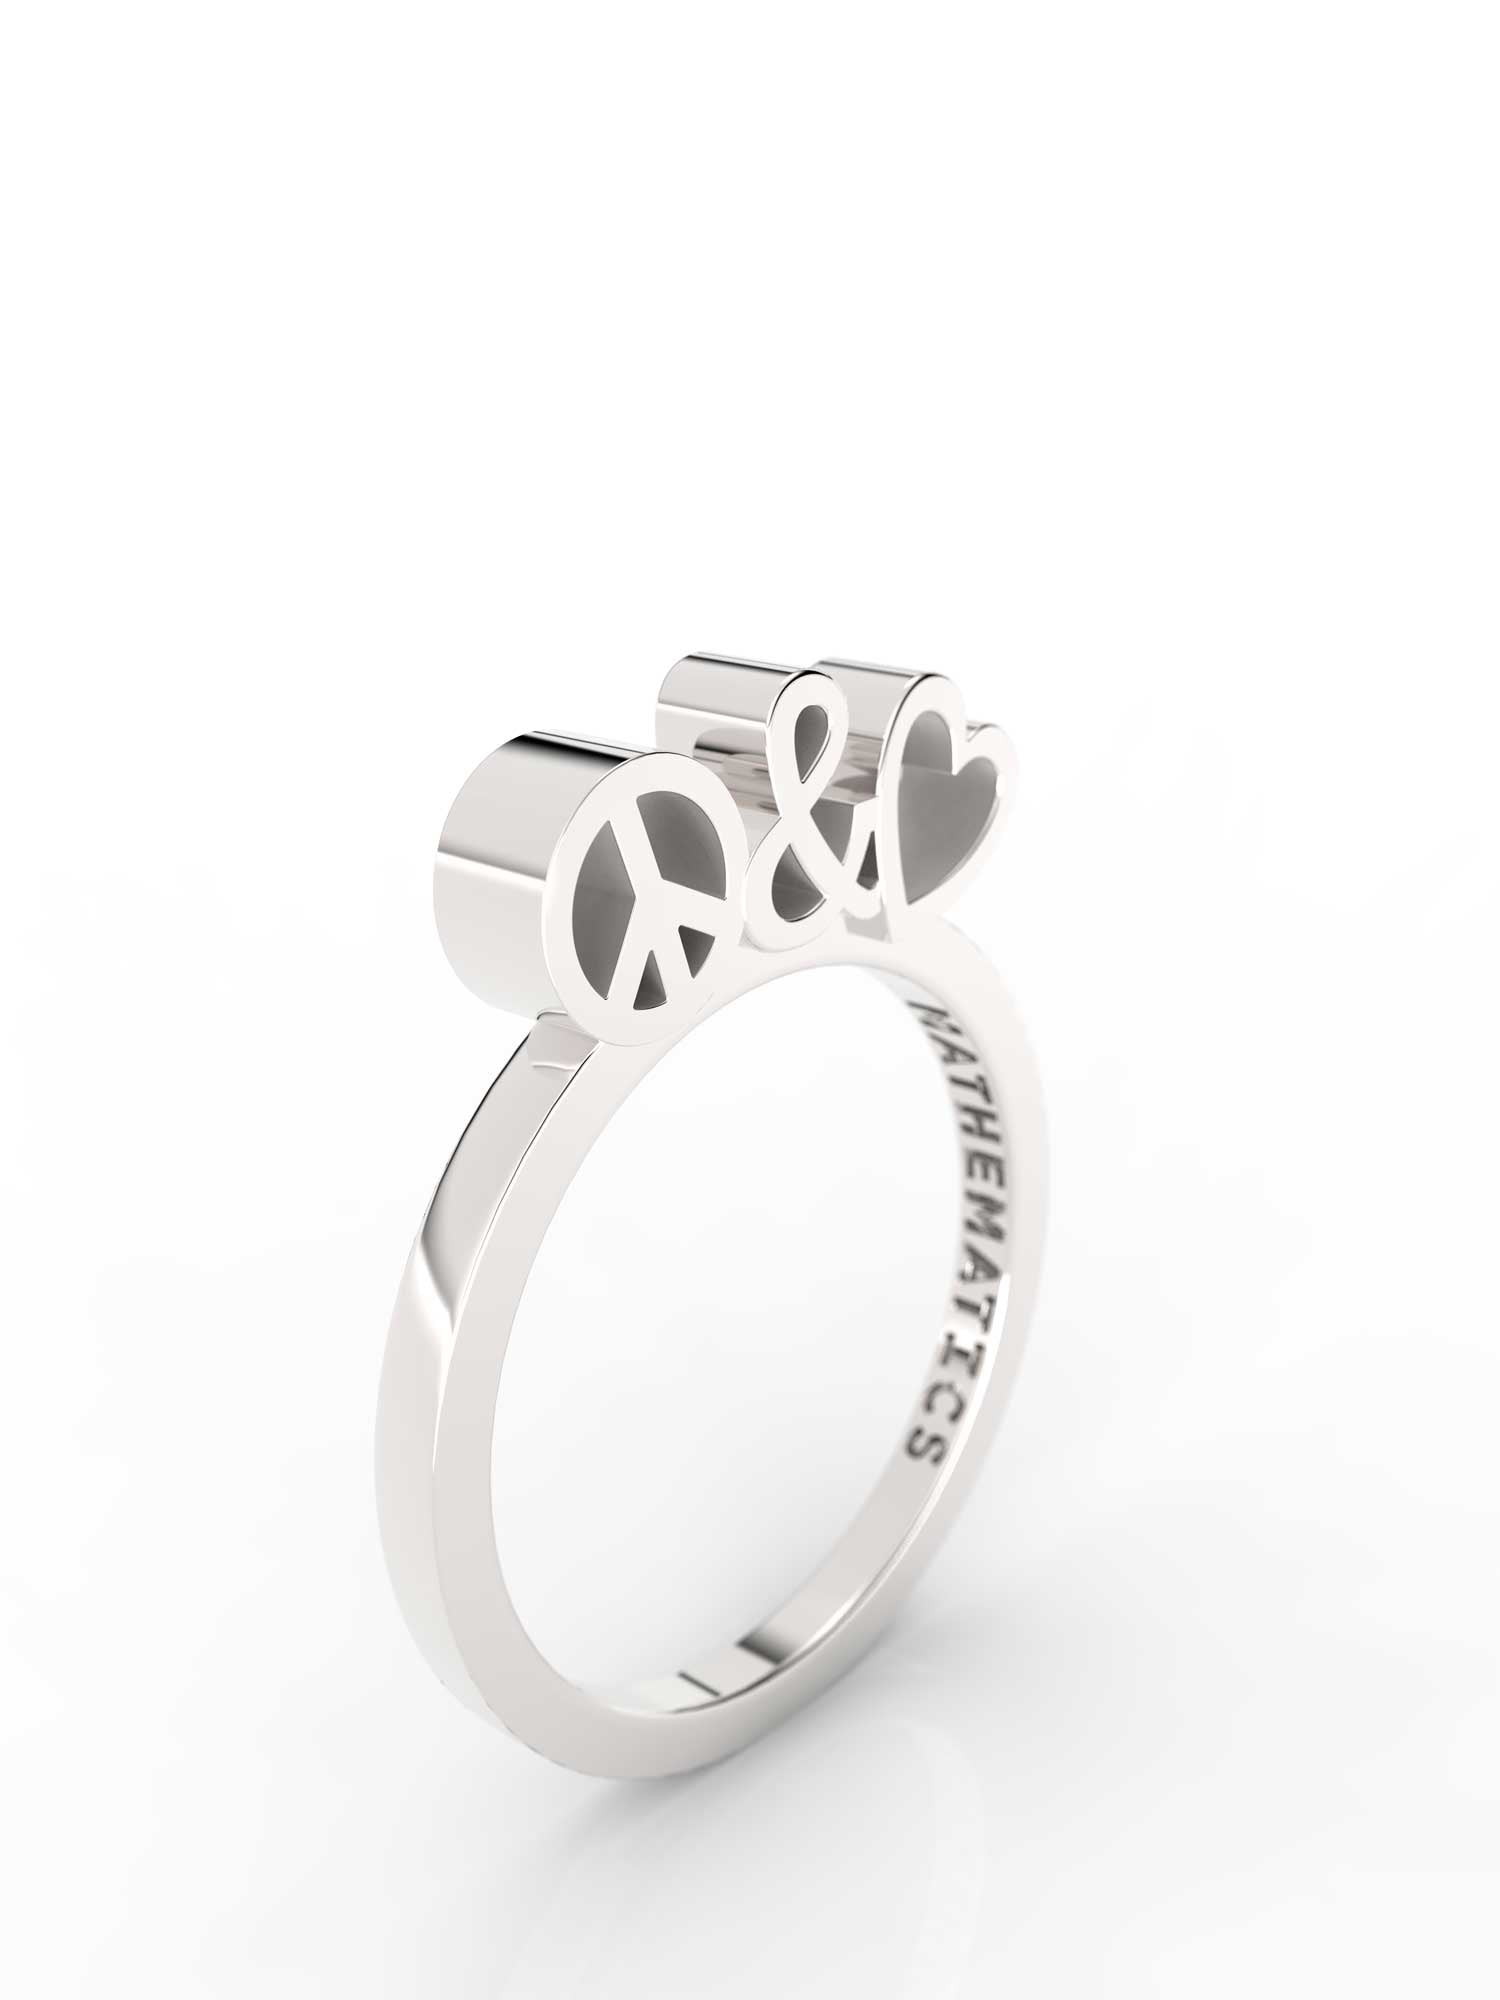 Isometric view of sterling silver peace and love slice ring, featuring architectural slice design